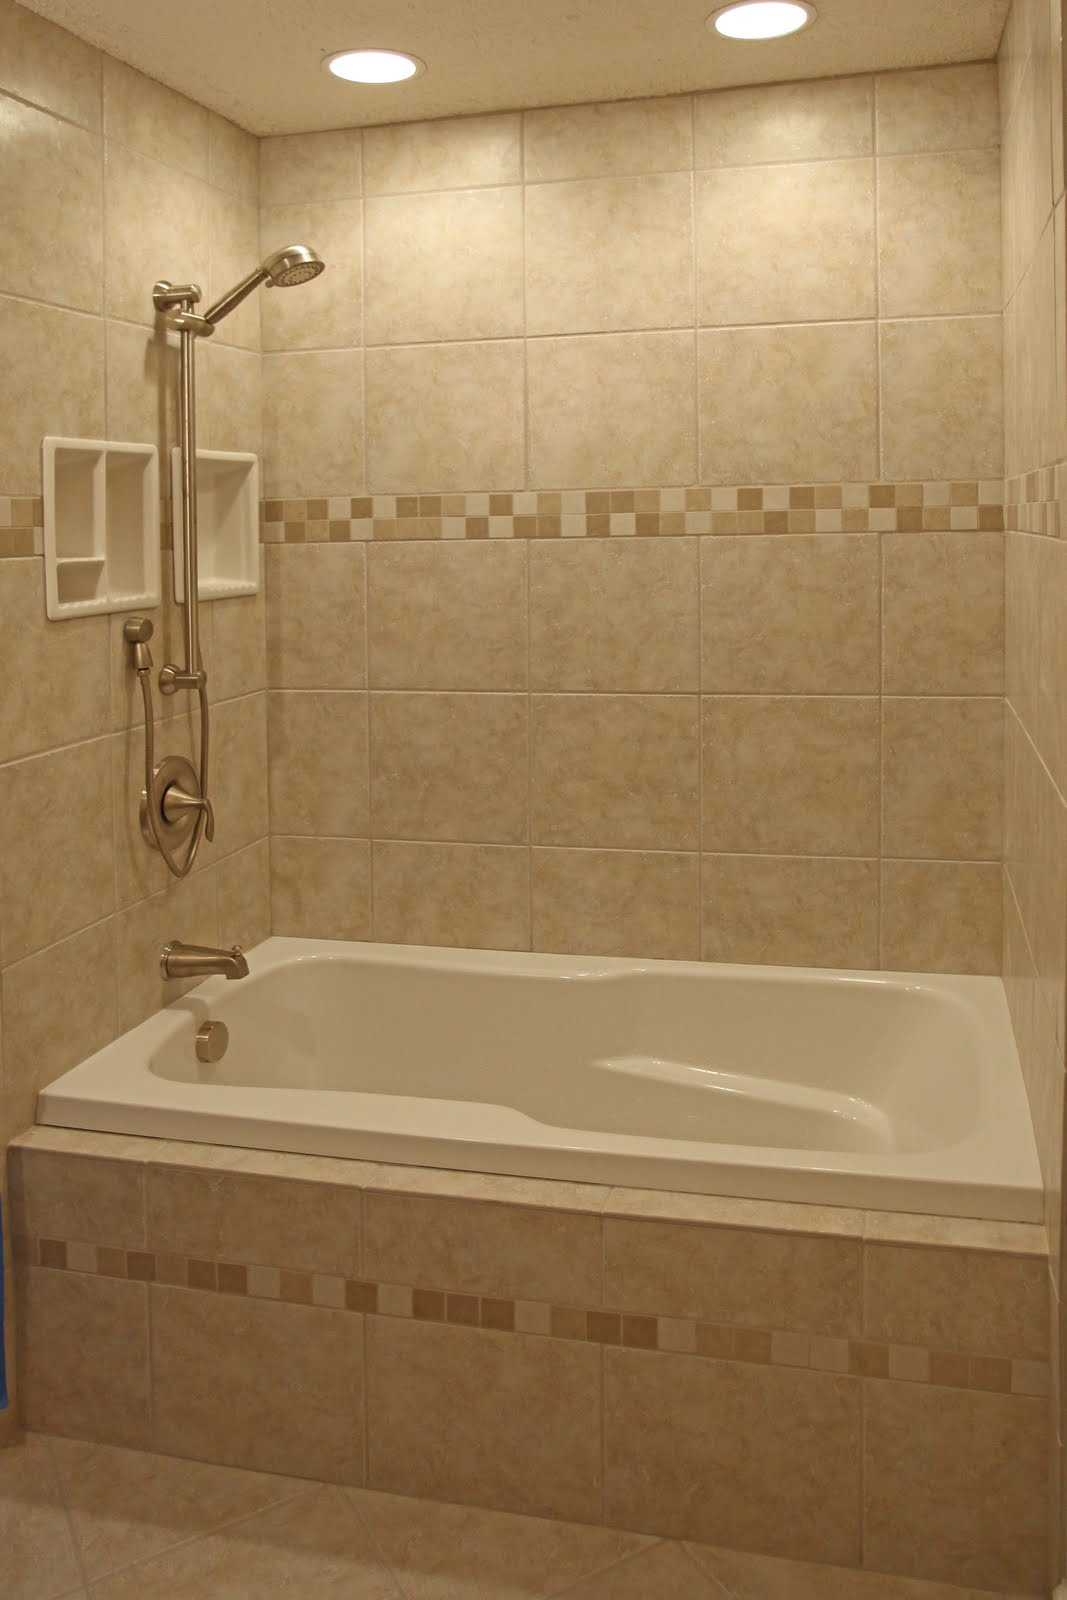 Bathroom remodeling design ideas tile shower niches november 2009 - Bathroom shower ideas ...